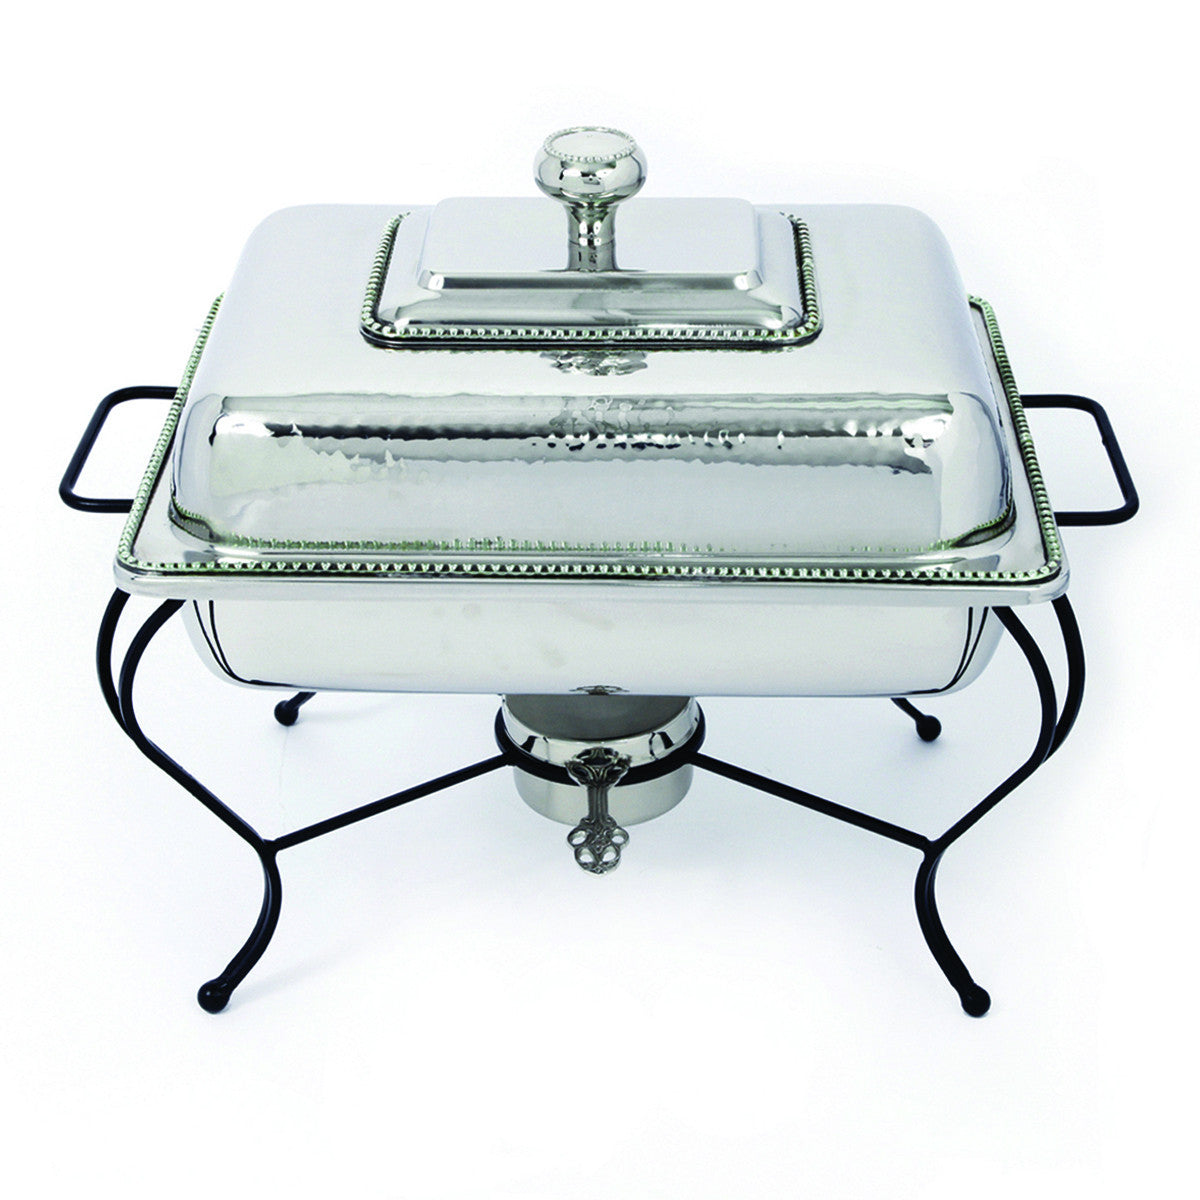 Oven To Table 8 QT Rectangle Stainless Steel Chafing Dish